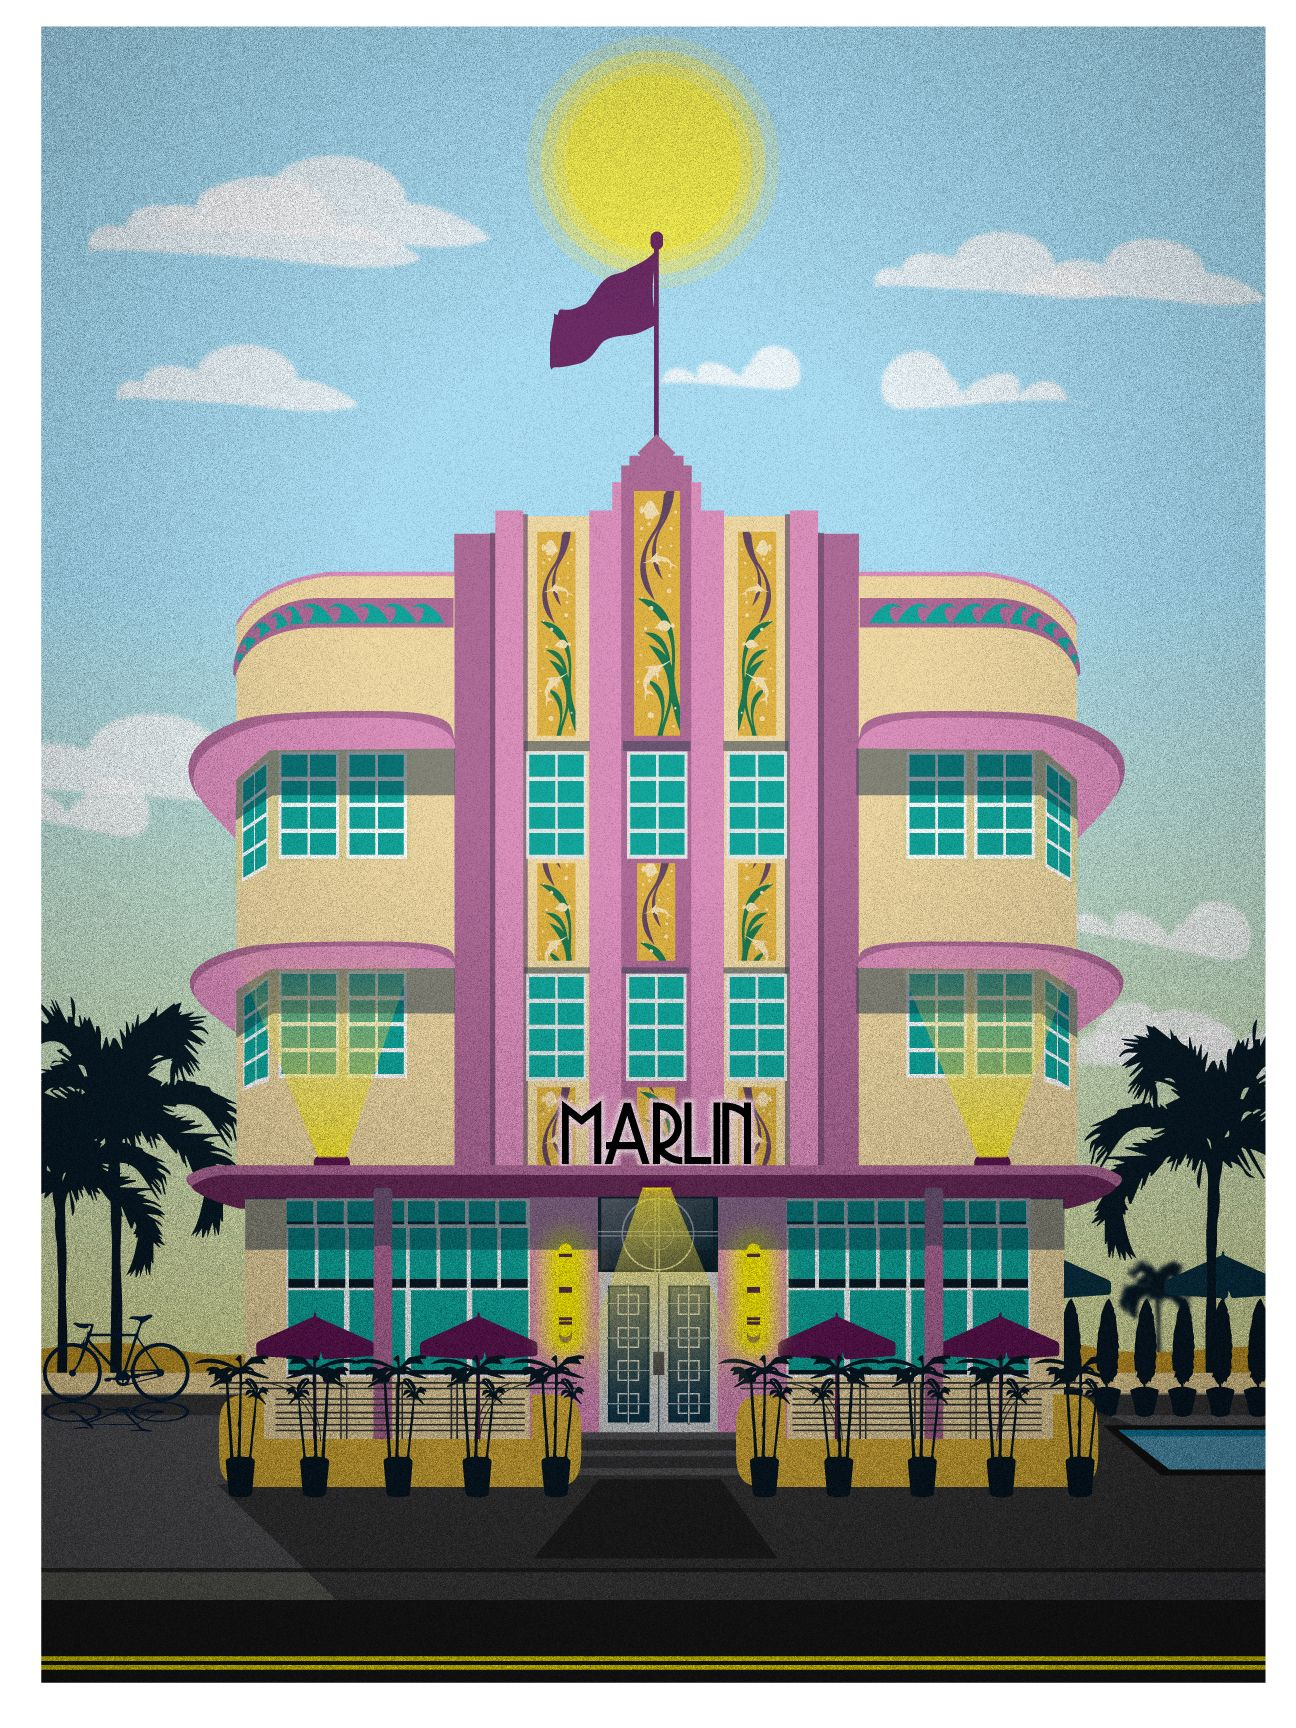 Miami Beach Hotel Series The Marlin 15 Vintage Travel Posters Ilration